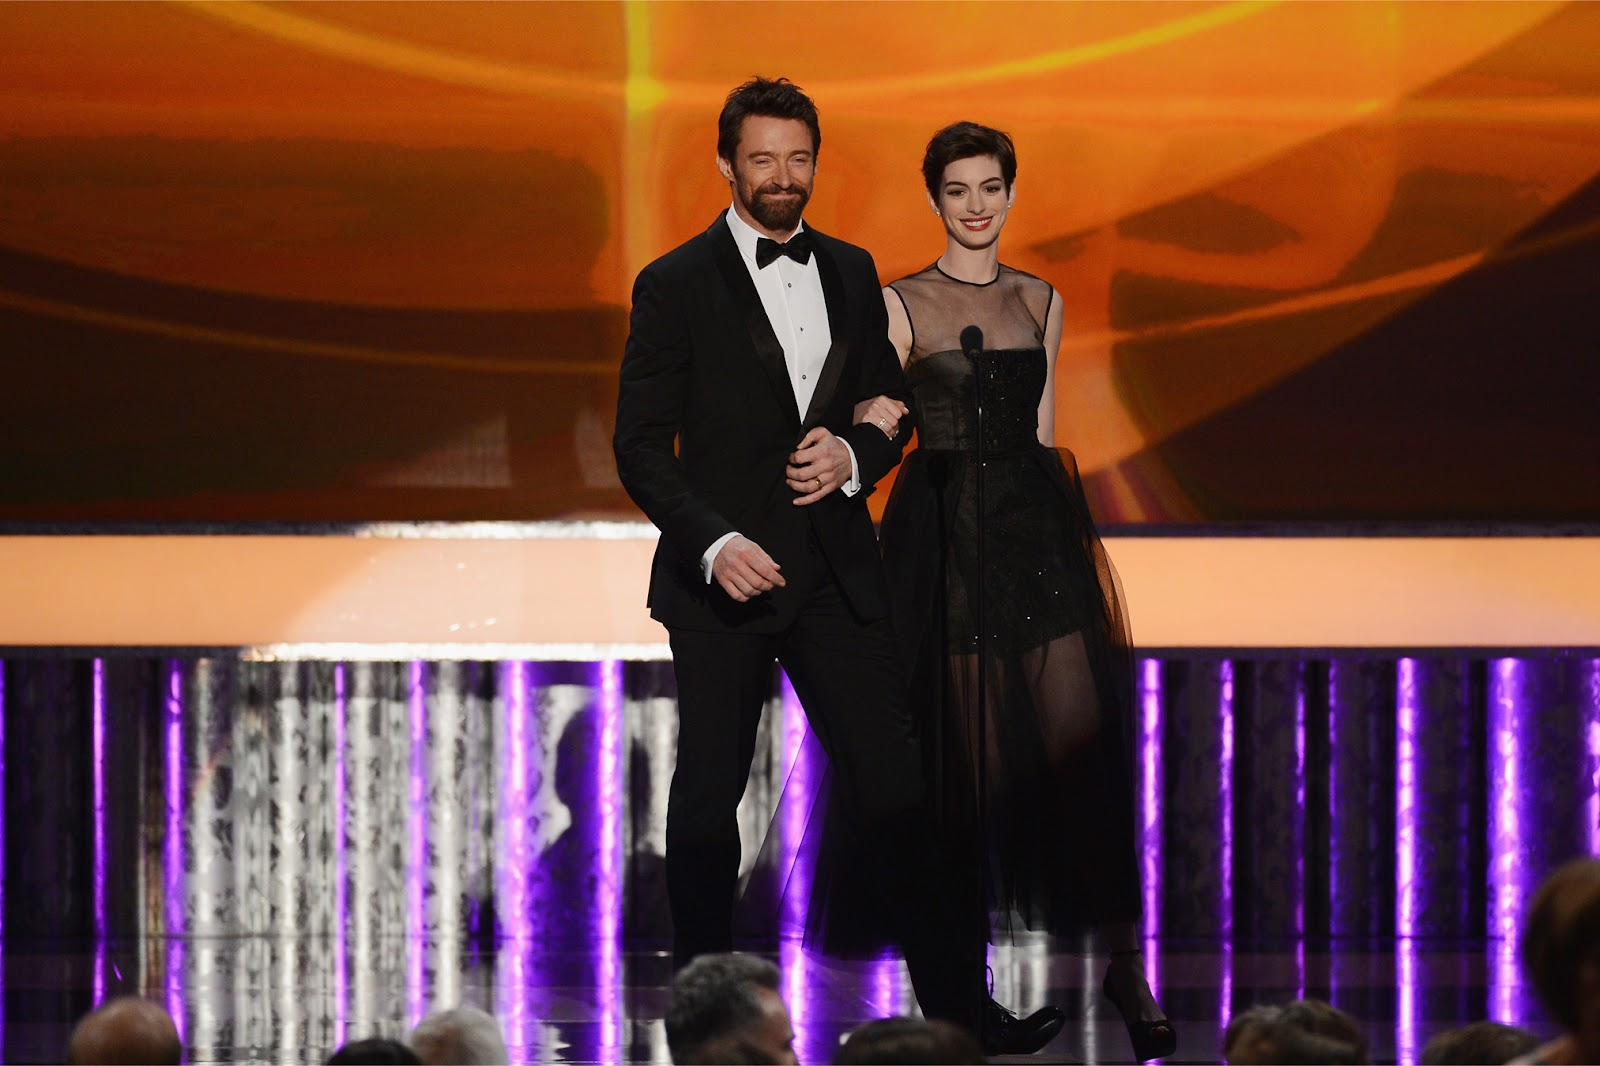 http://3.bp.blogspot.com/-Ryed5nM_4RY/UQZ6CNlG6JI/AAAAAAABTEQ/BhNEqxfvno8/s1600/Anne_Hathaway-Hugh_Jackman-19th_Annual_Screen_Actors_Guild_Awards-1_27_2013-002.jpg